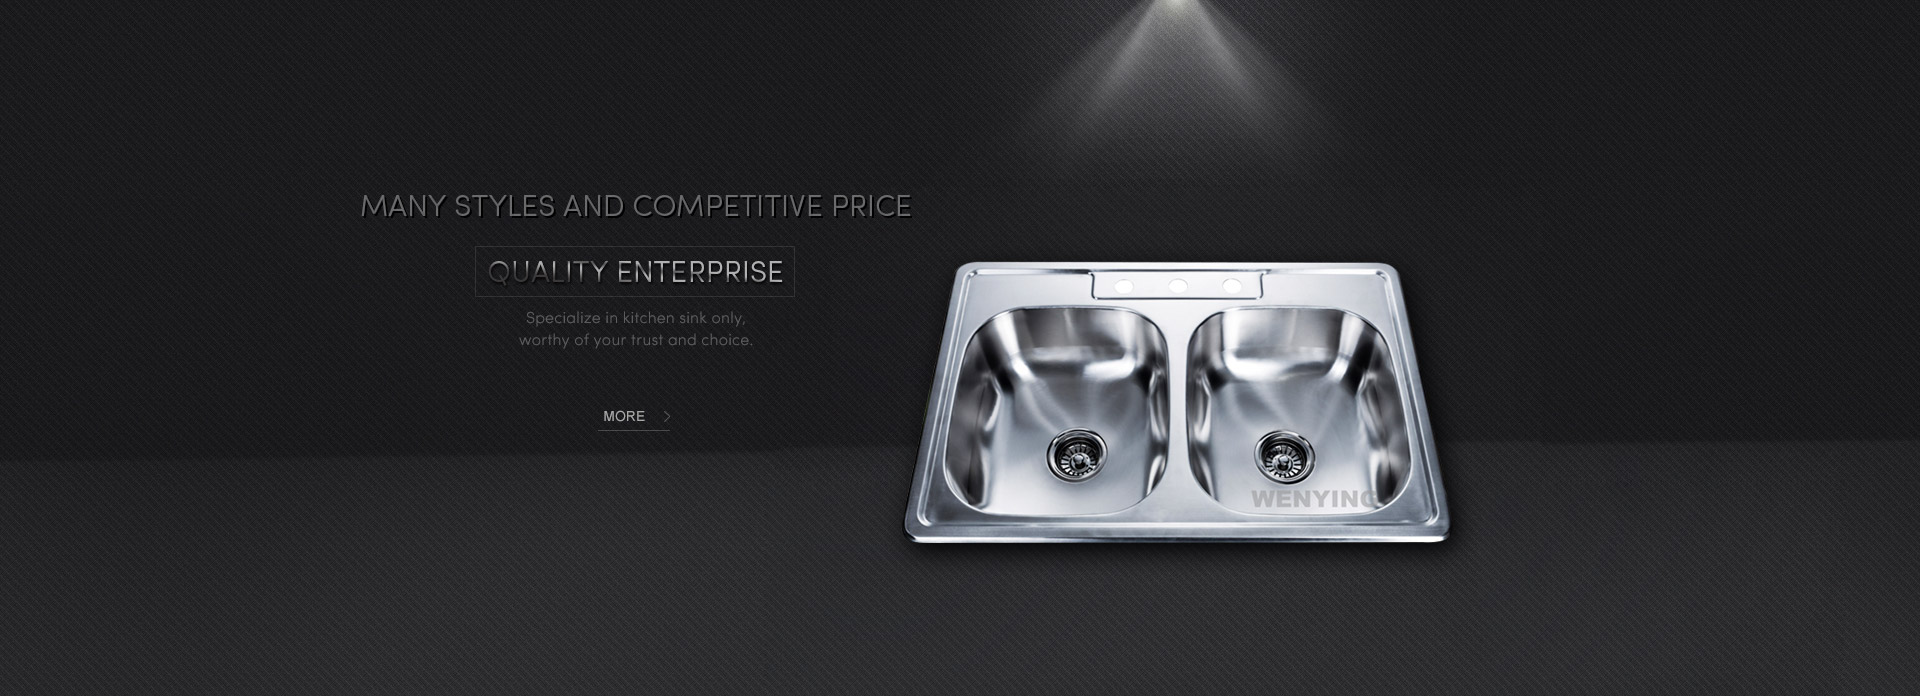 Specialize in kitchen sink only,worthy of your trust and choice.